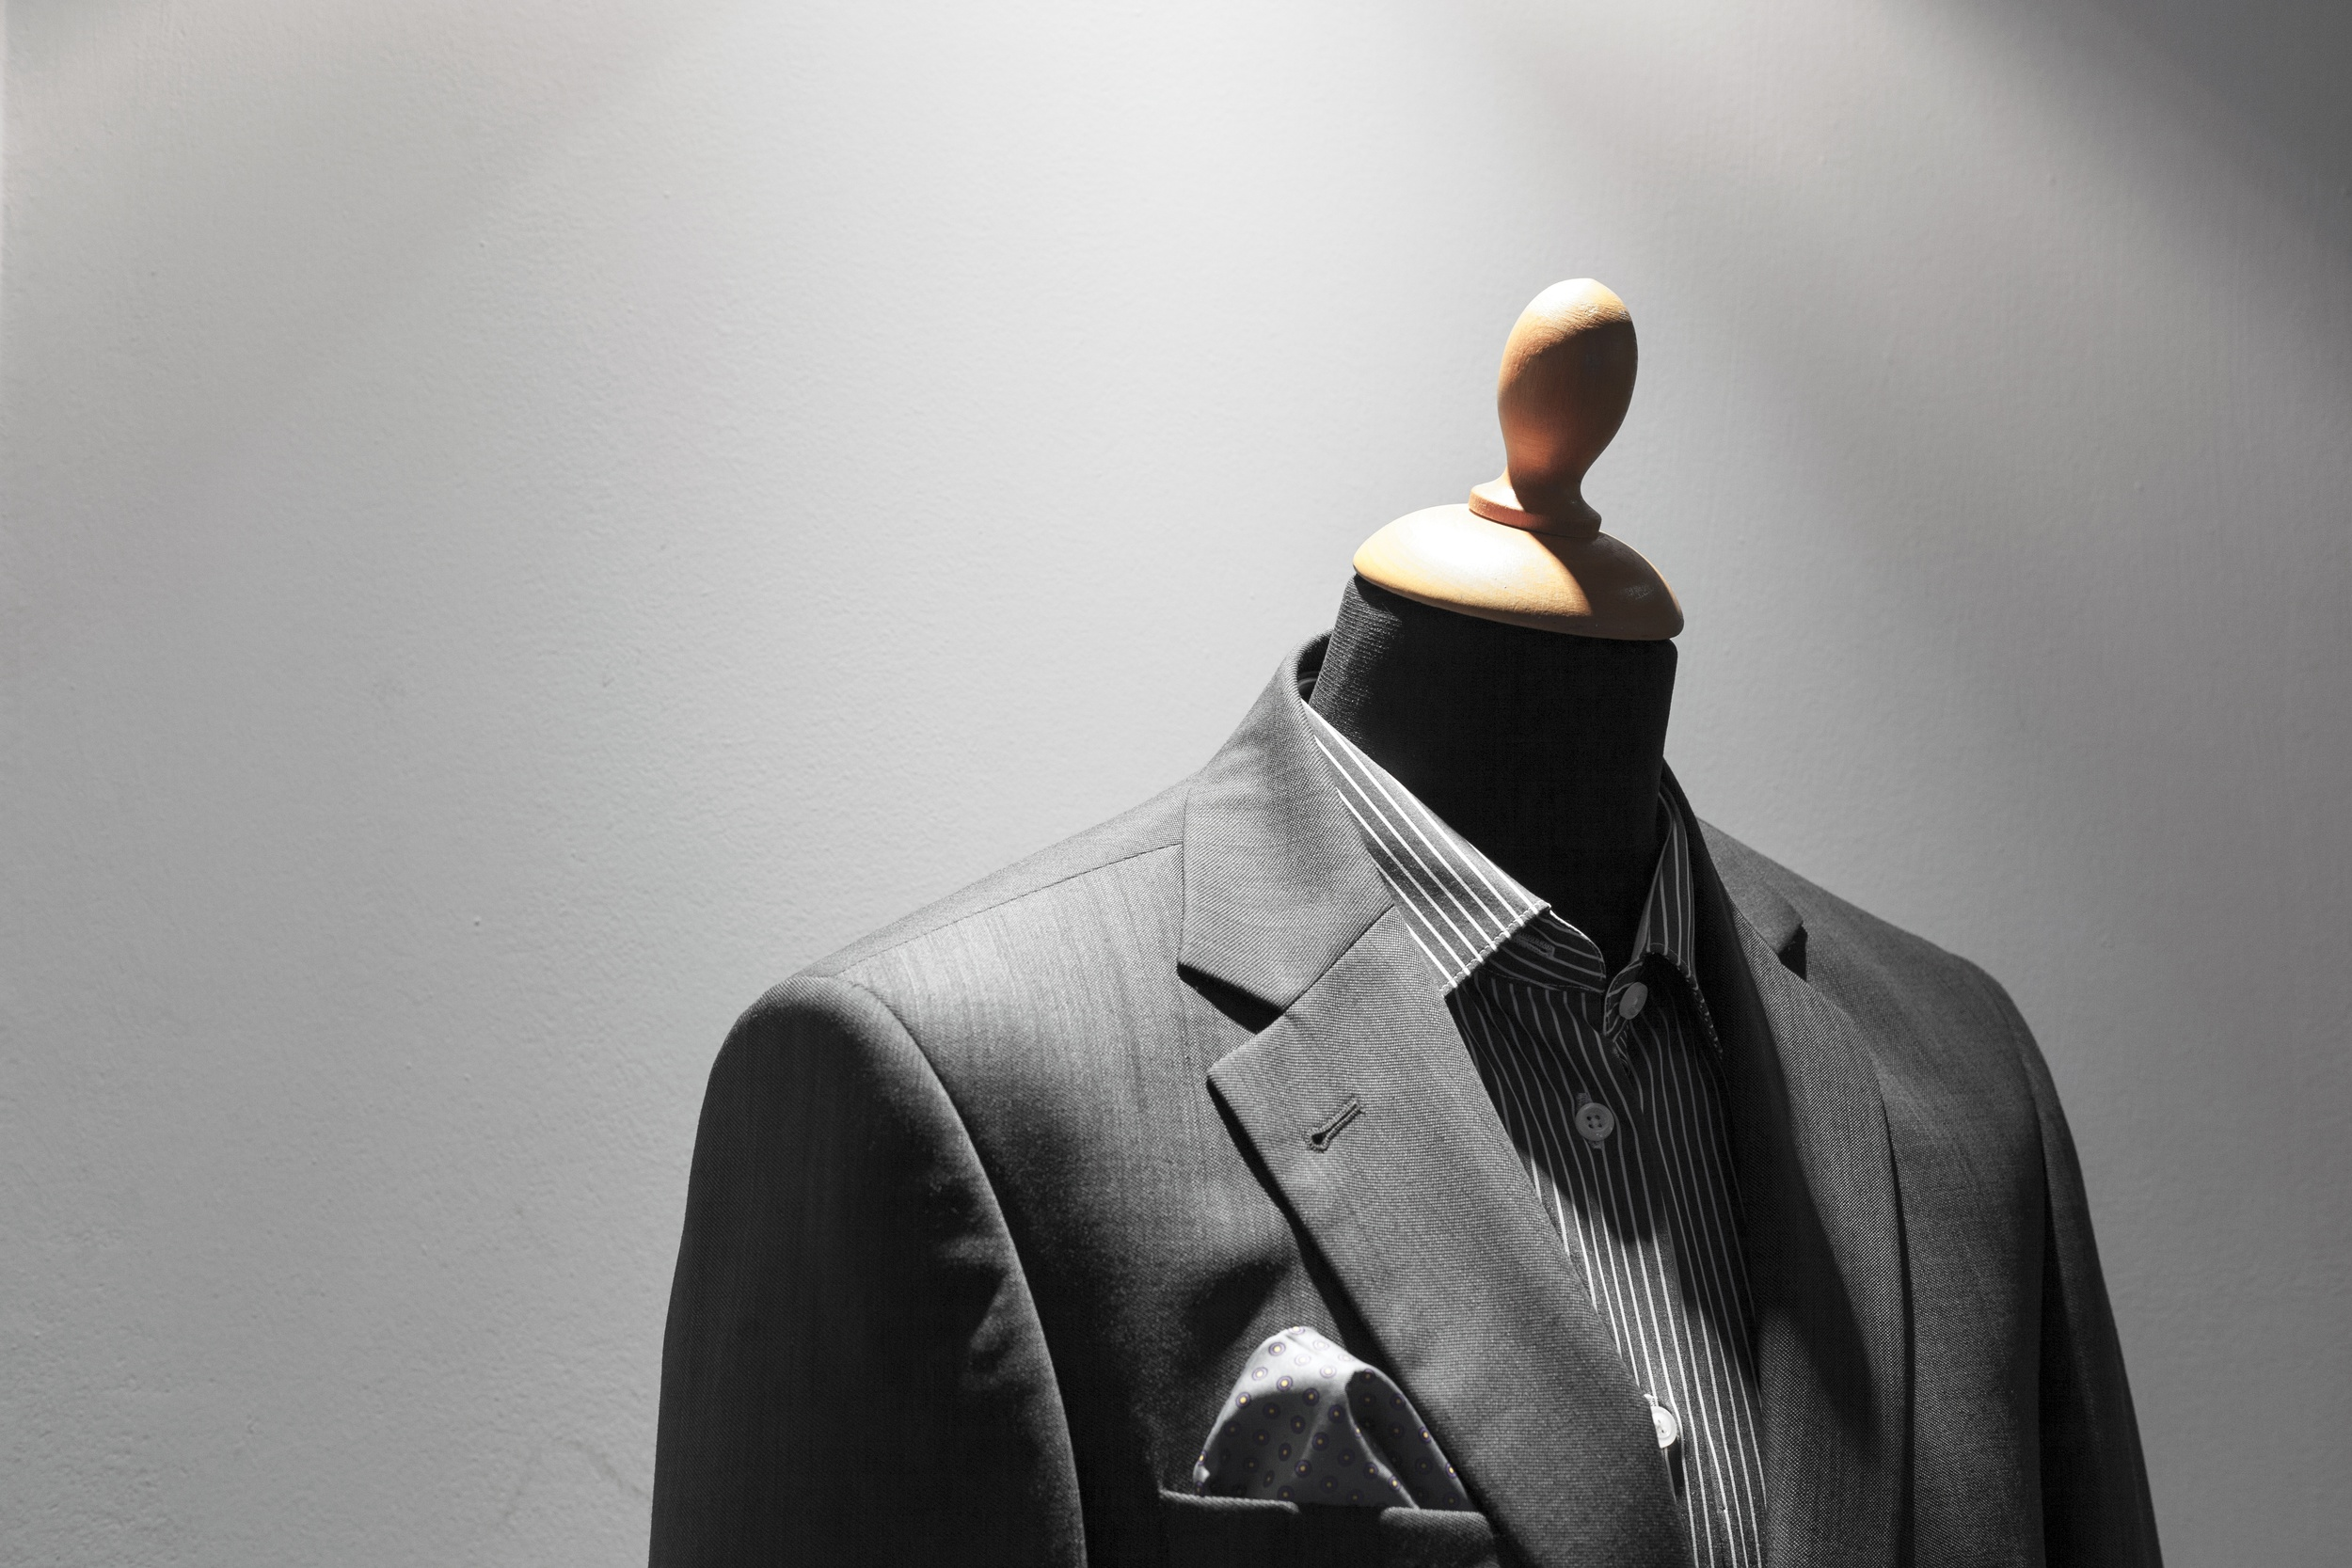 Bespoke suit tailoring by Summer Couture visiting tailor in Sevenoaks, Kent